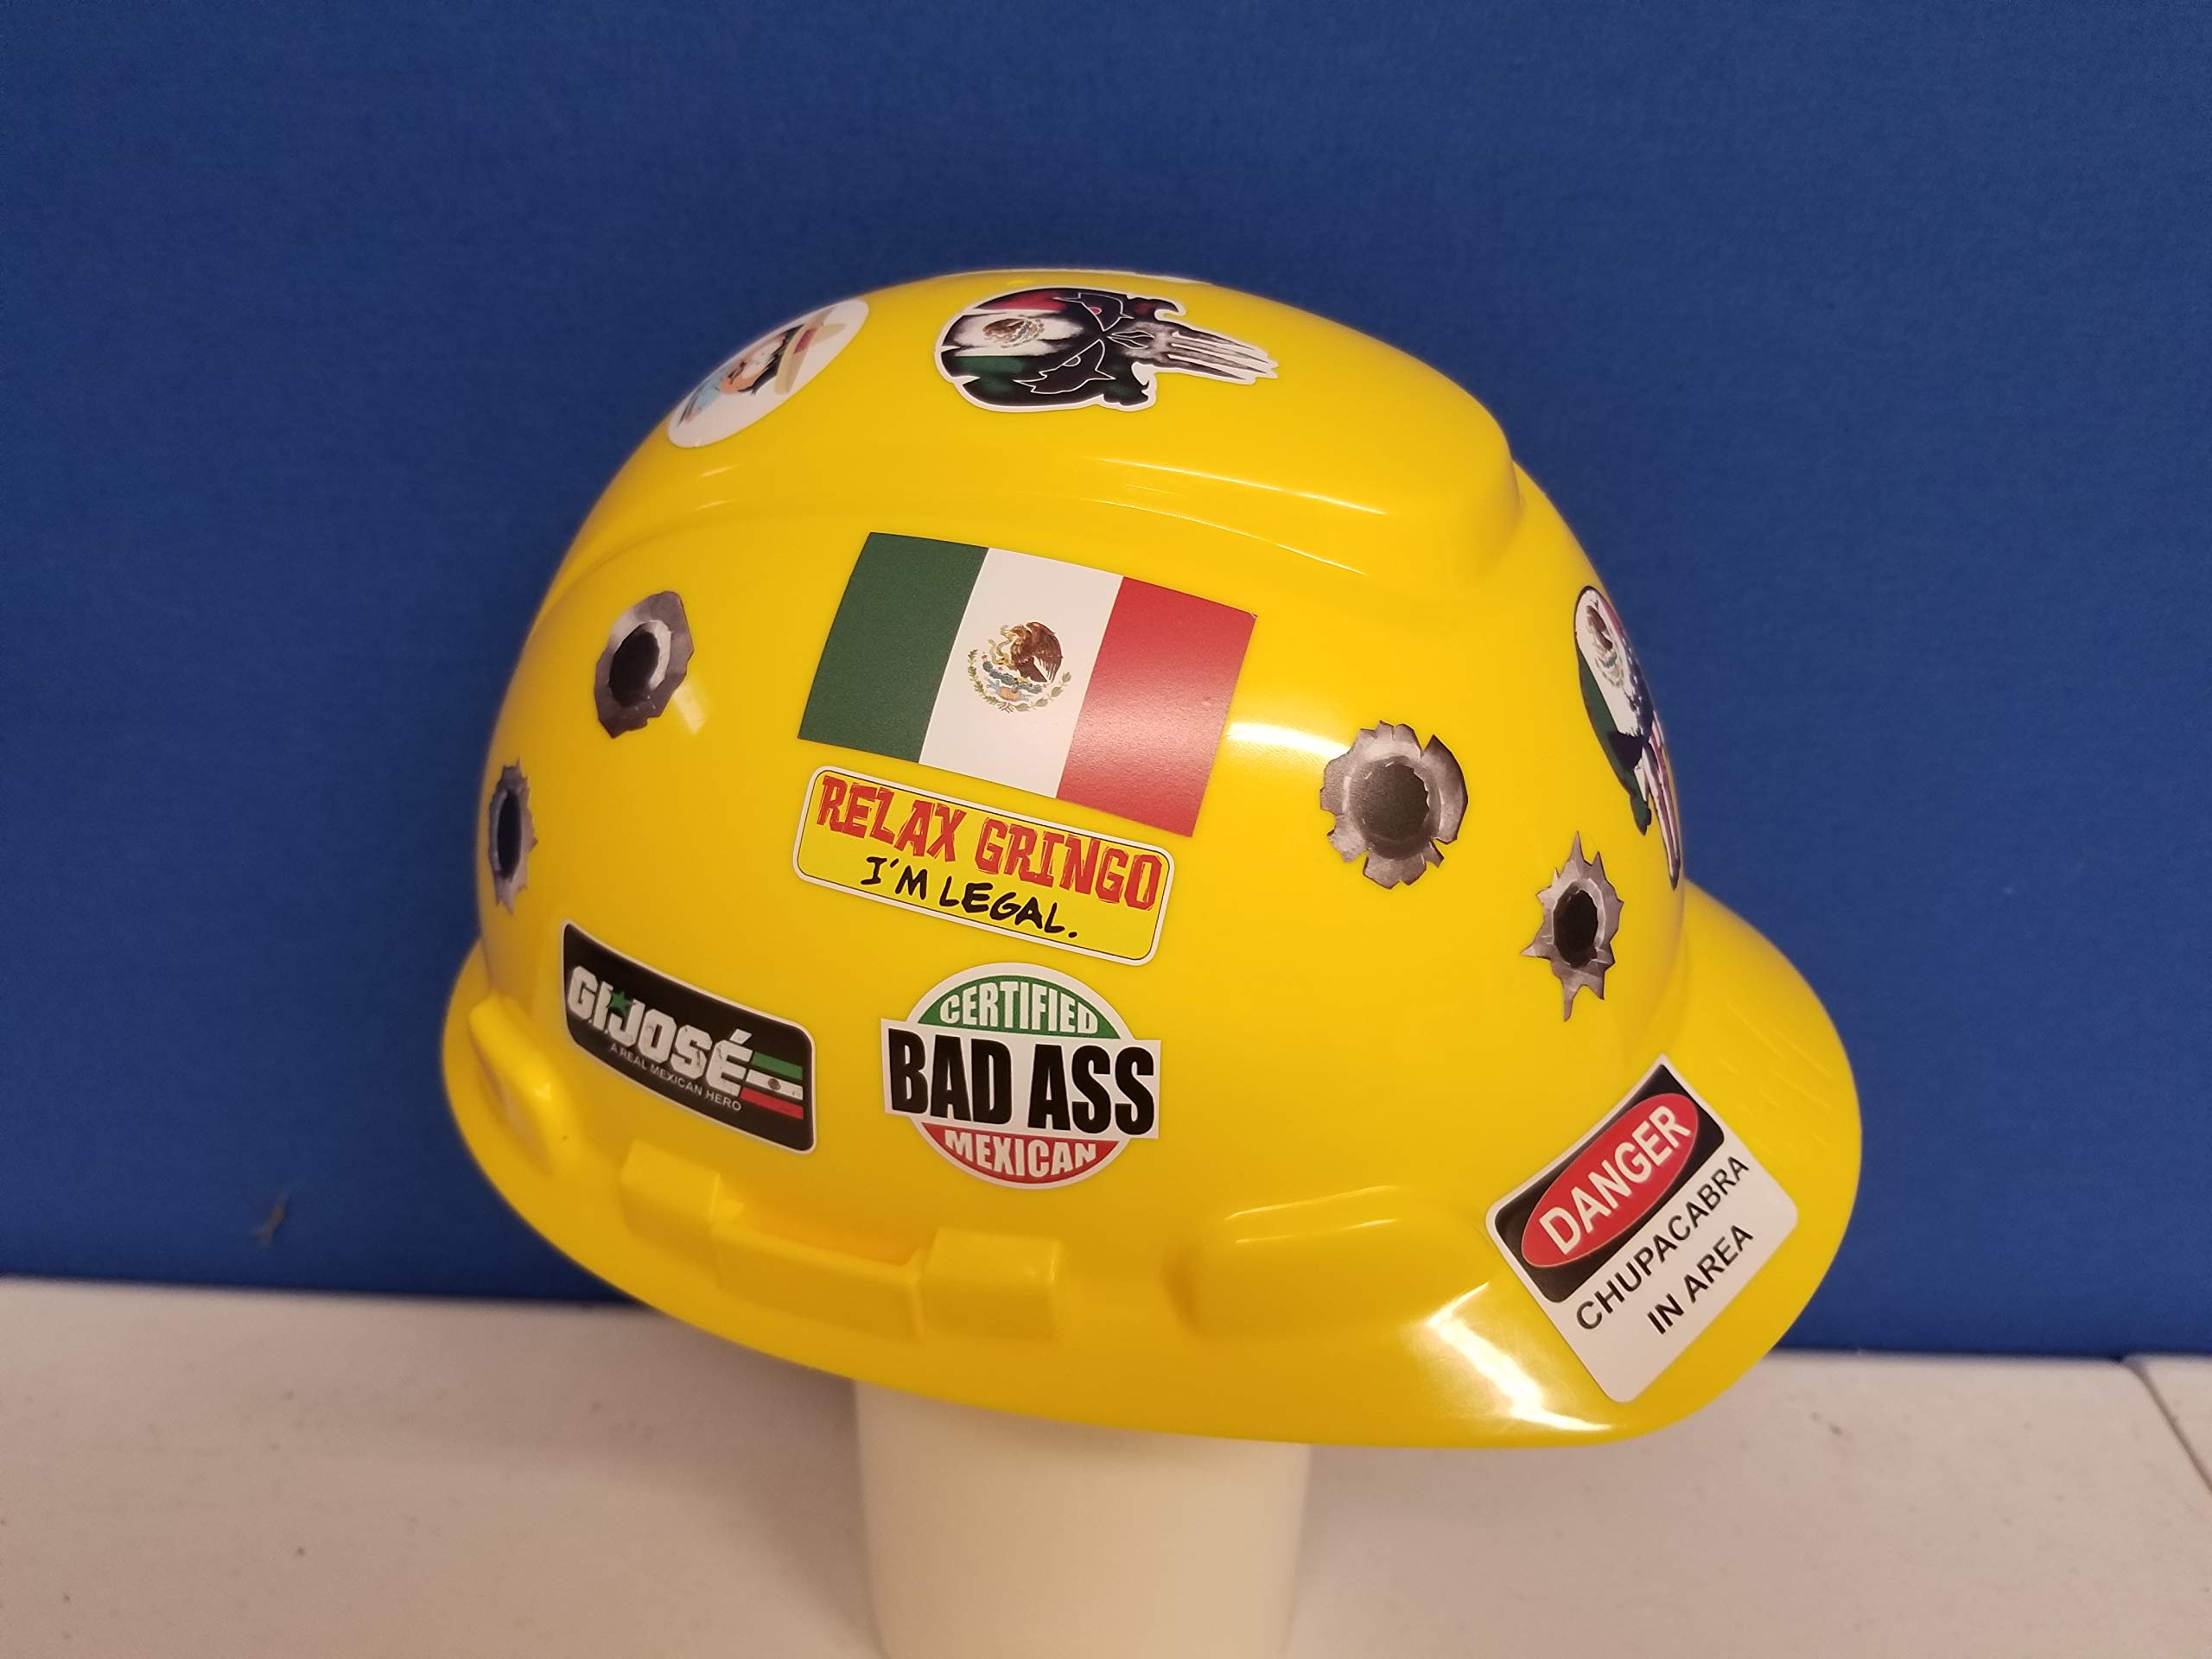 56 pack of Mexican American Edition Crude Humor Hilarious Hard Hat Prank Decal Joke Sticker Funny Laugh Construction LOL by Decals by Haley (Image #3)